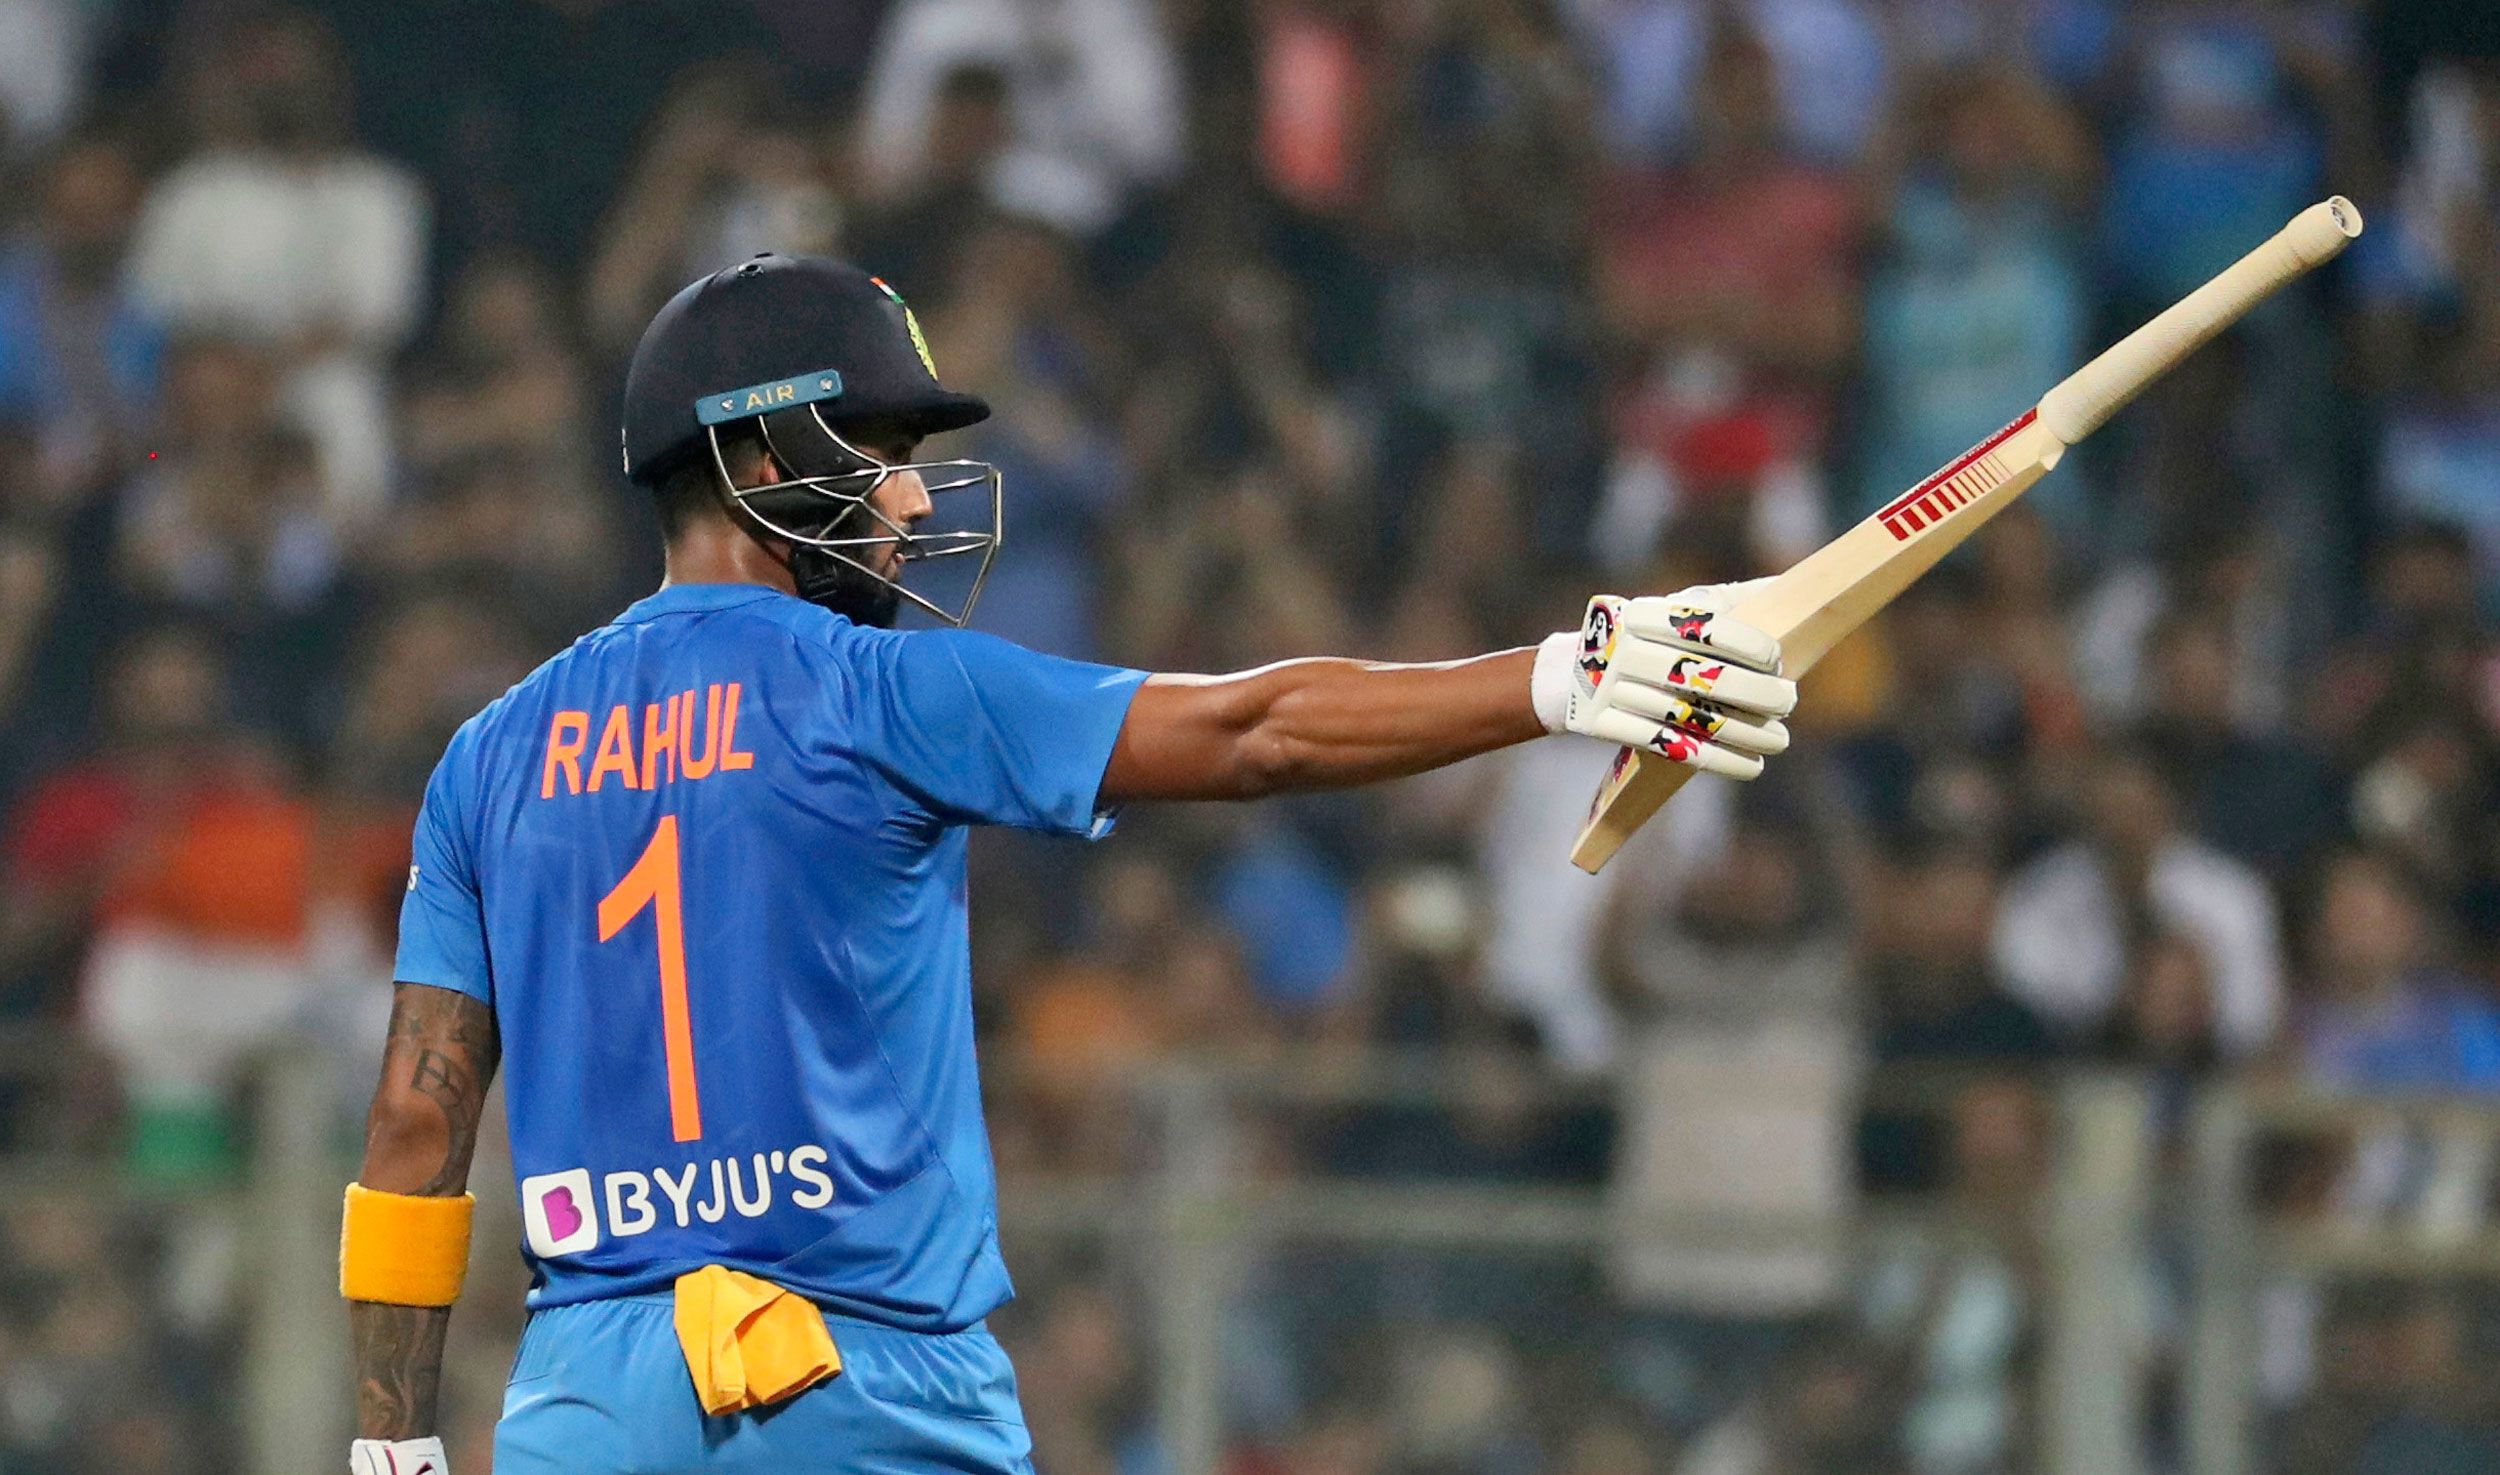 Lokesh Rahul raises his bat after scoring 50 runs during the third Twenty20 international cricket match between India and West Indies in Mumbai on Wednesday.